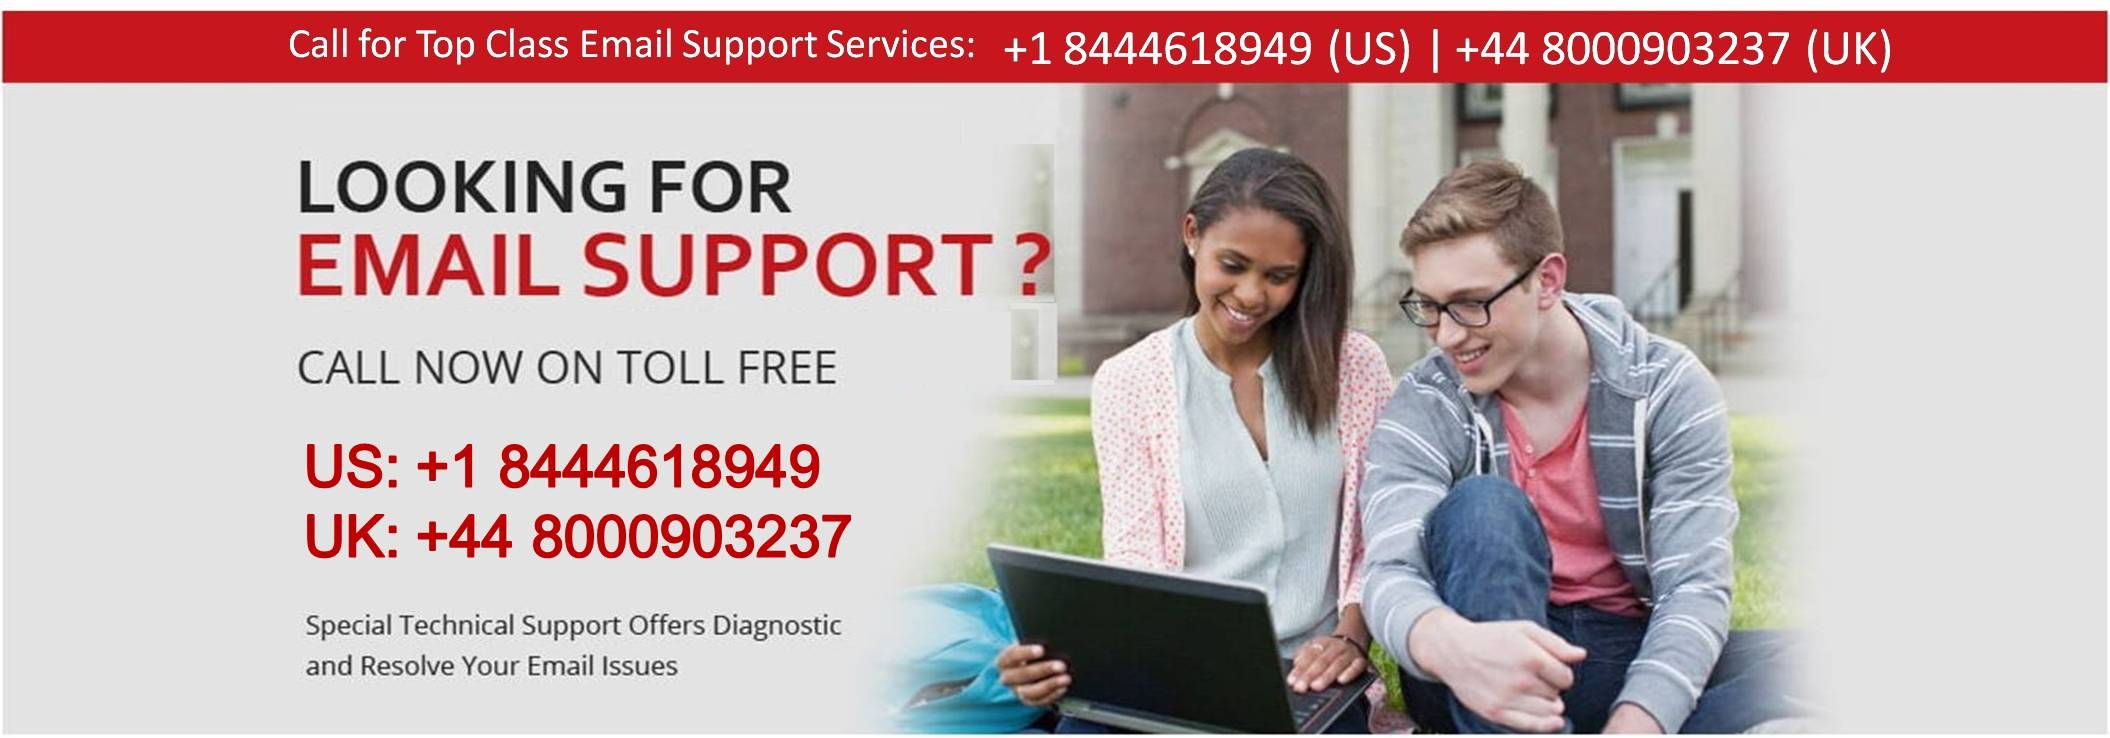 Email Help Desk Solution Is One Of The Fastest Growing Email